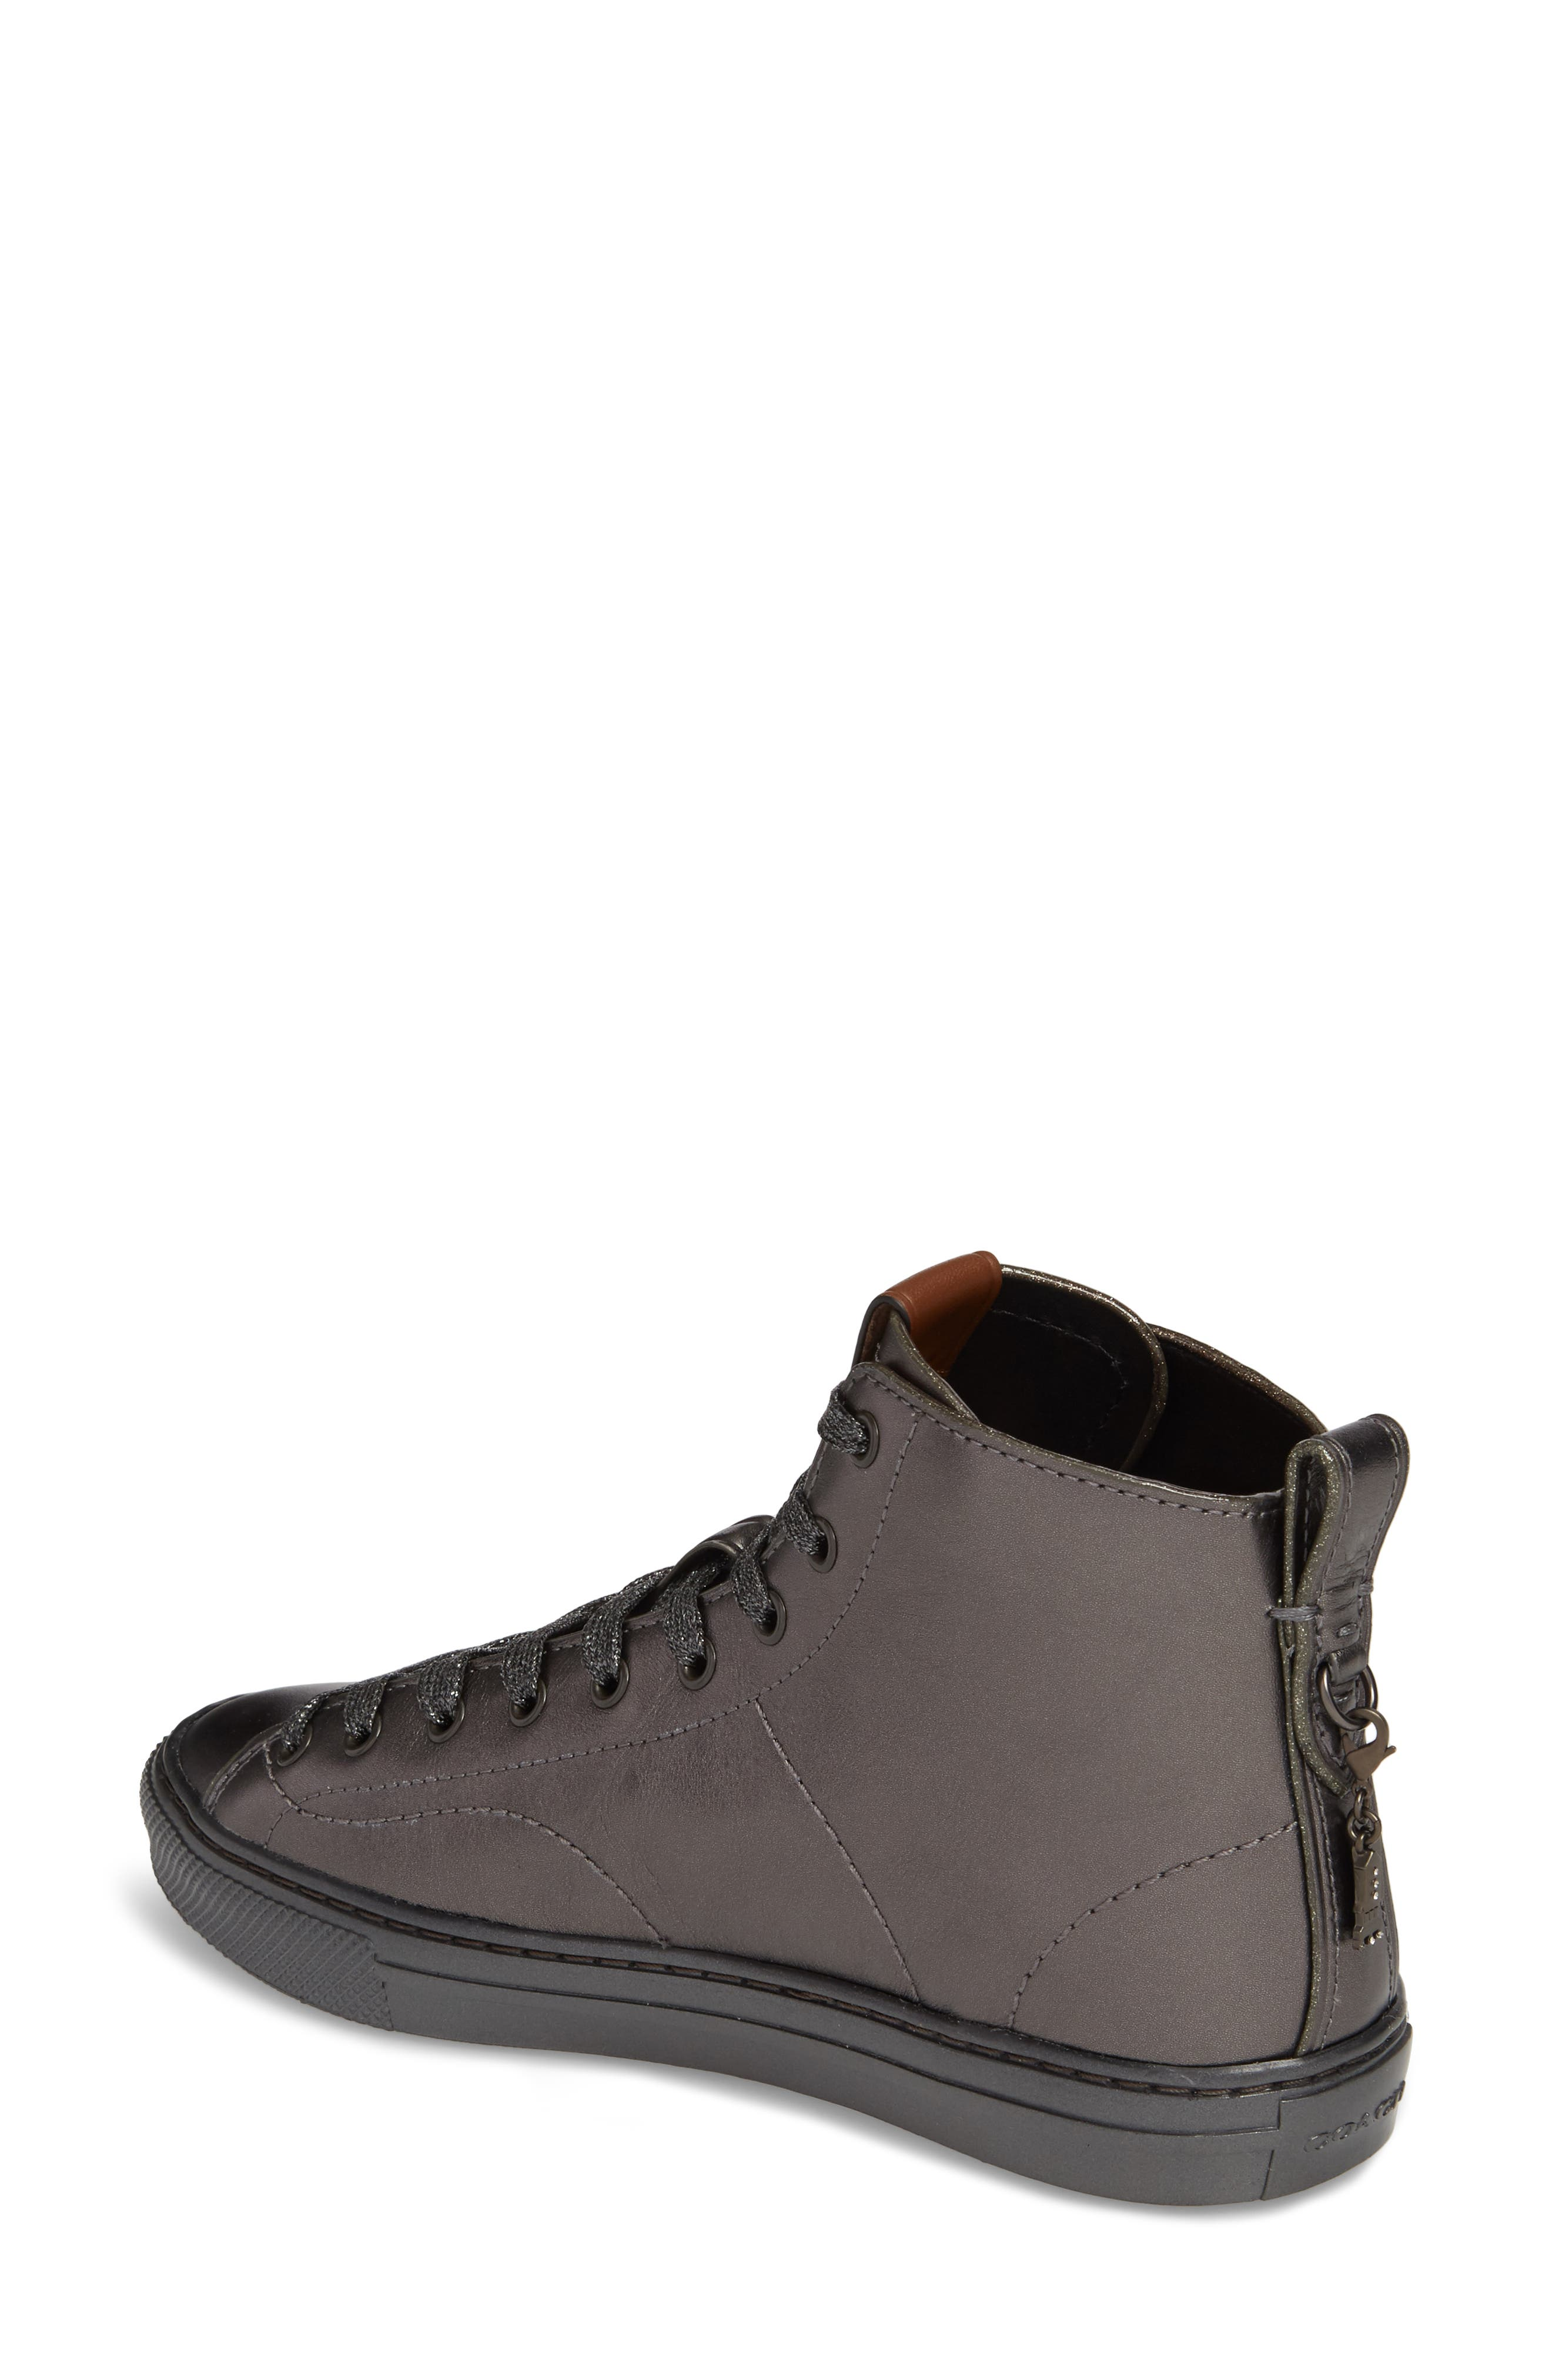 Patch High Top Sneaker,                             Alternate thumbnail 2, color,                             Gunmetal Leather